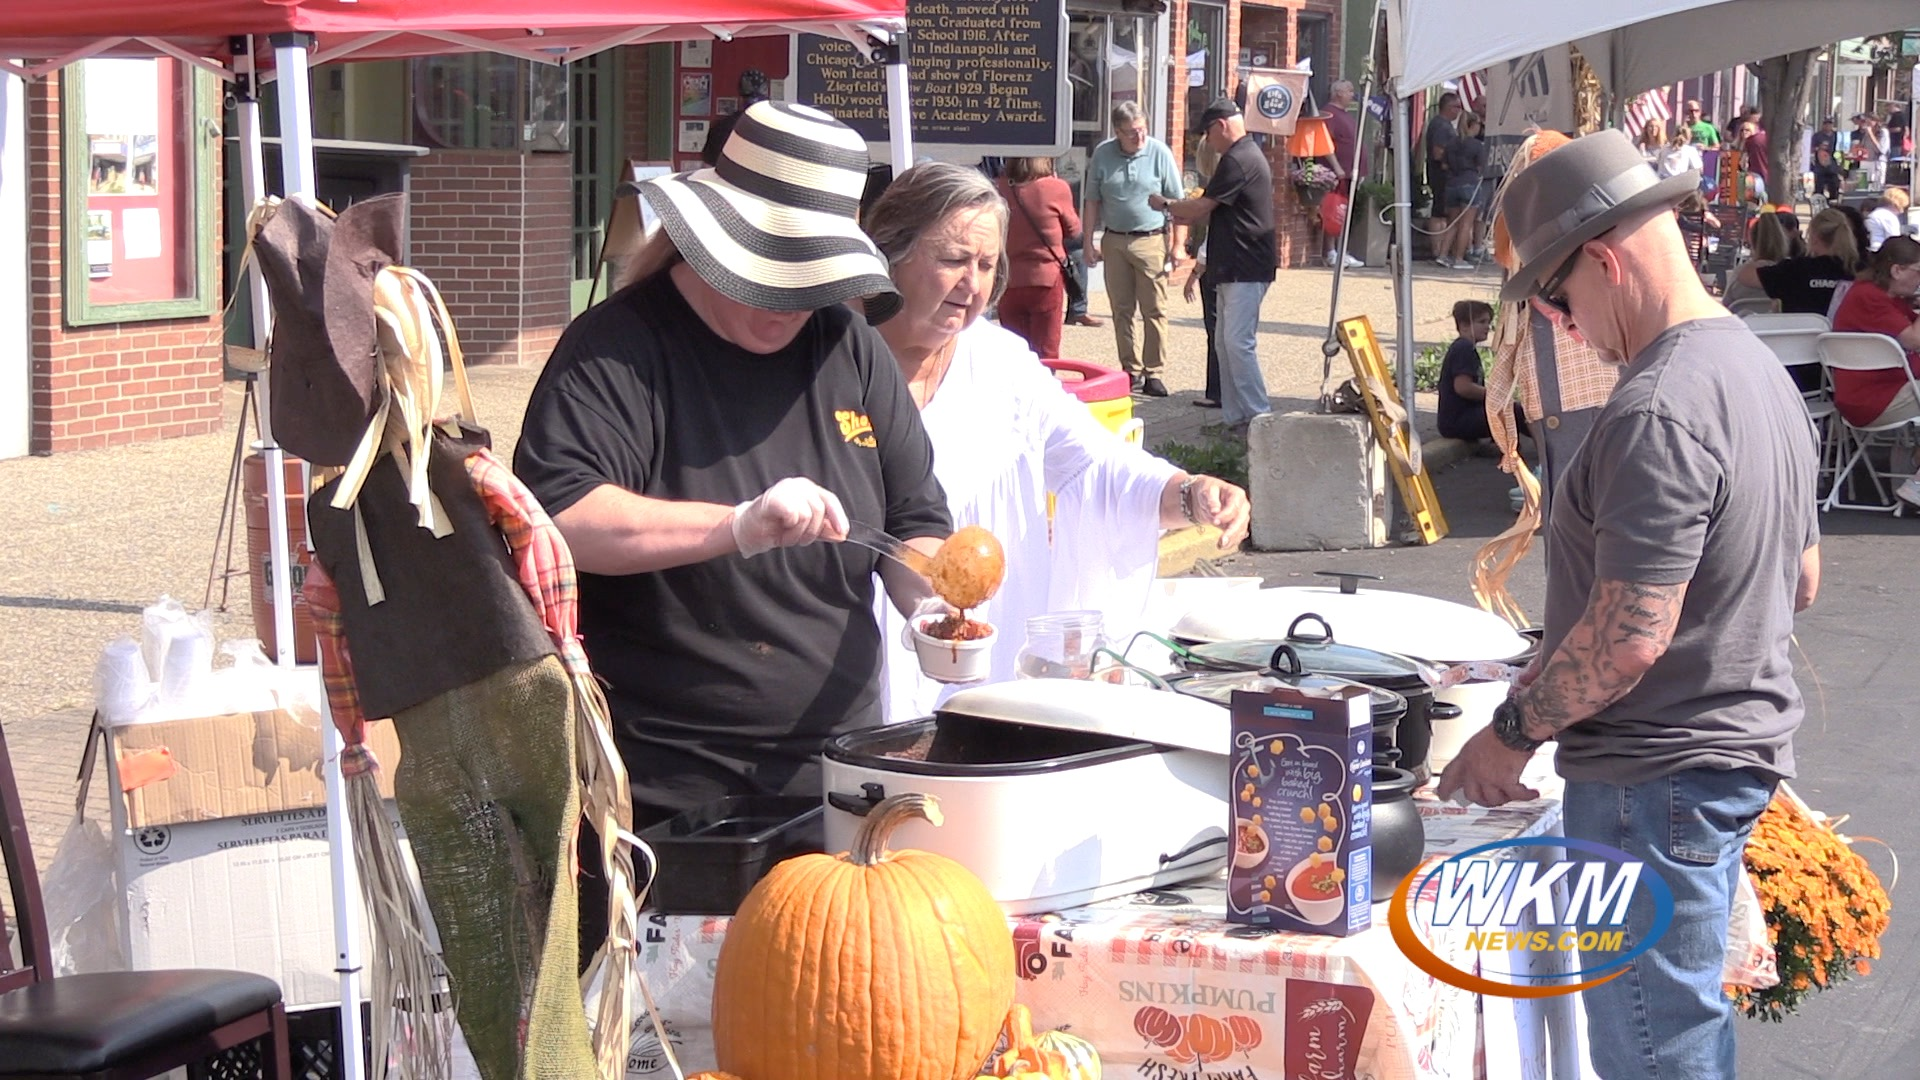 Main Street Boiled Over With Visitors for Annual Soup, Stew, Chili & Brew Festival